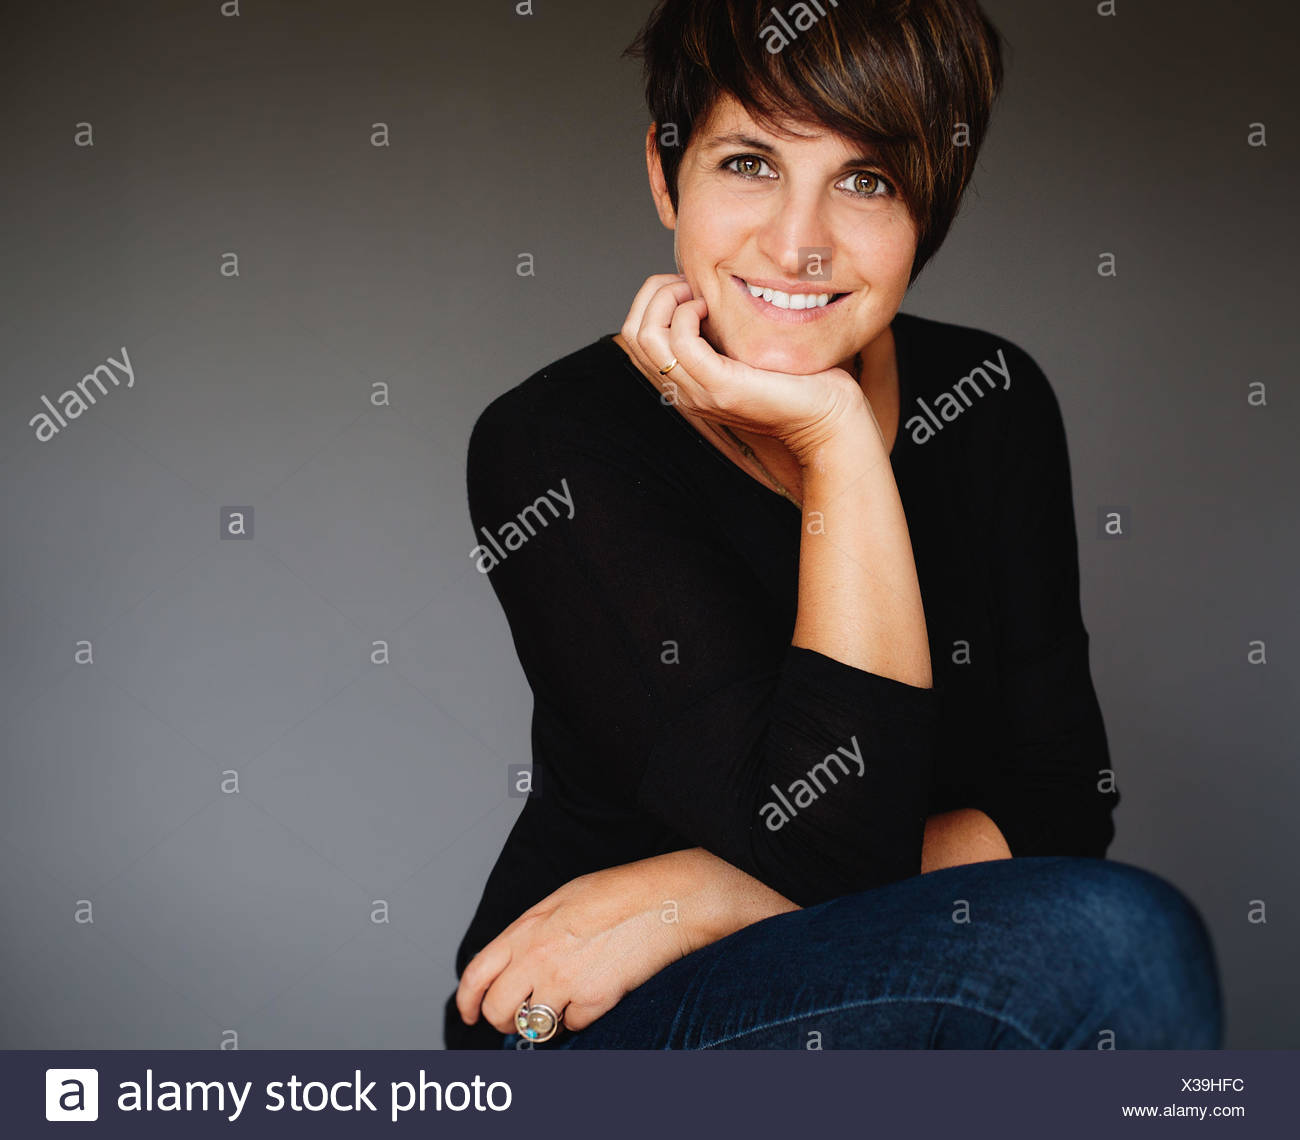 Portrait of smiling middle aged woman - Stock Image